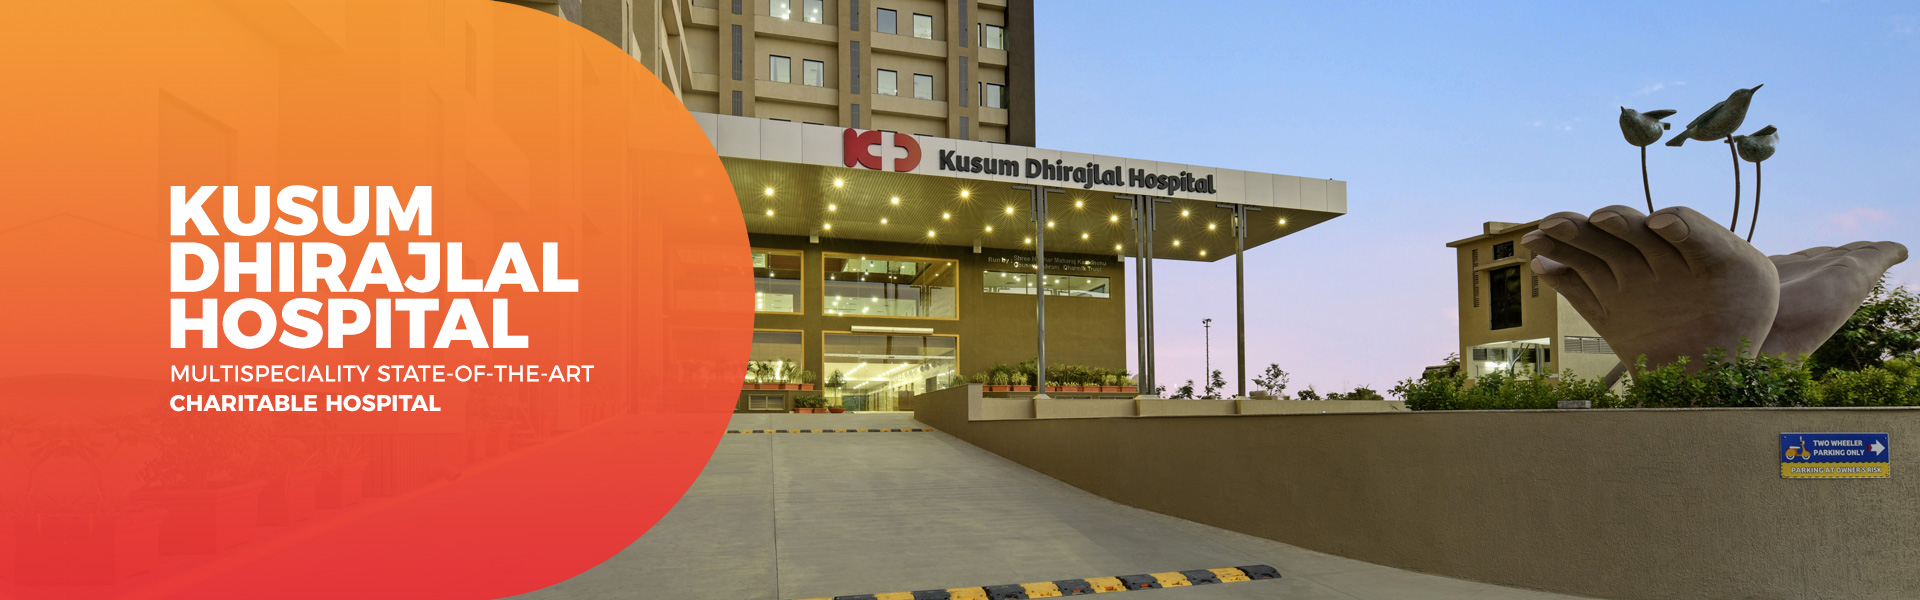 KD Hospital Skin Specialist in Ahmedabad Dentistry and Implant centre in Ahmedabad Eye Specialist in Ahmedabad Top 10 Surgeons in India